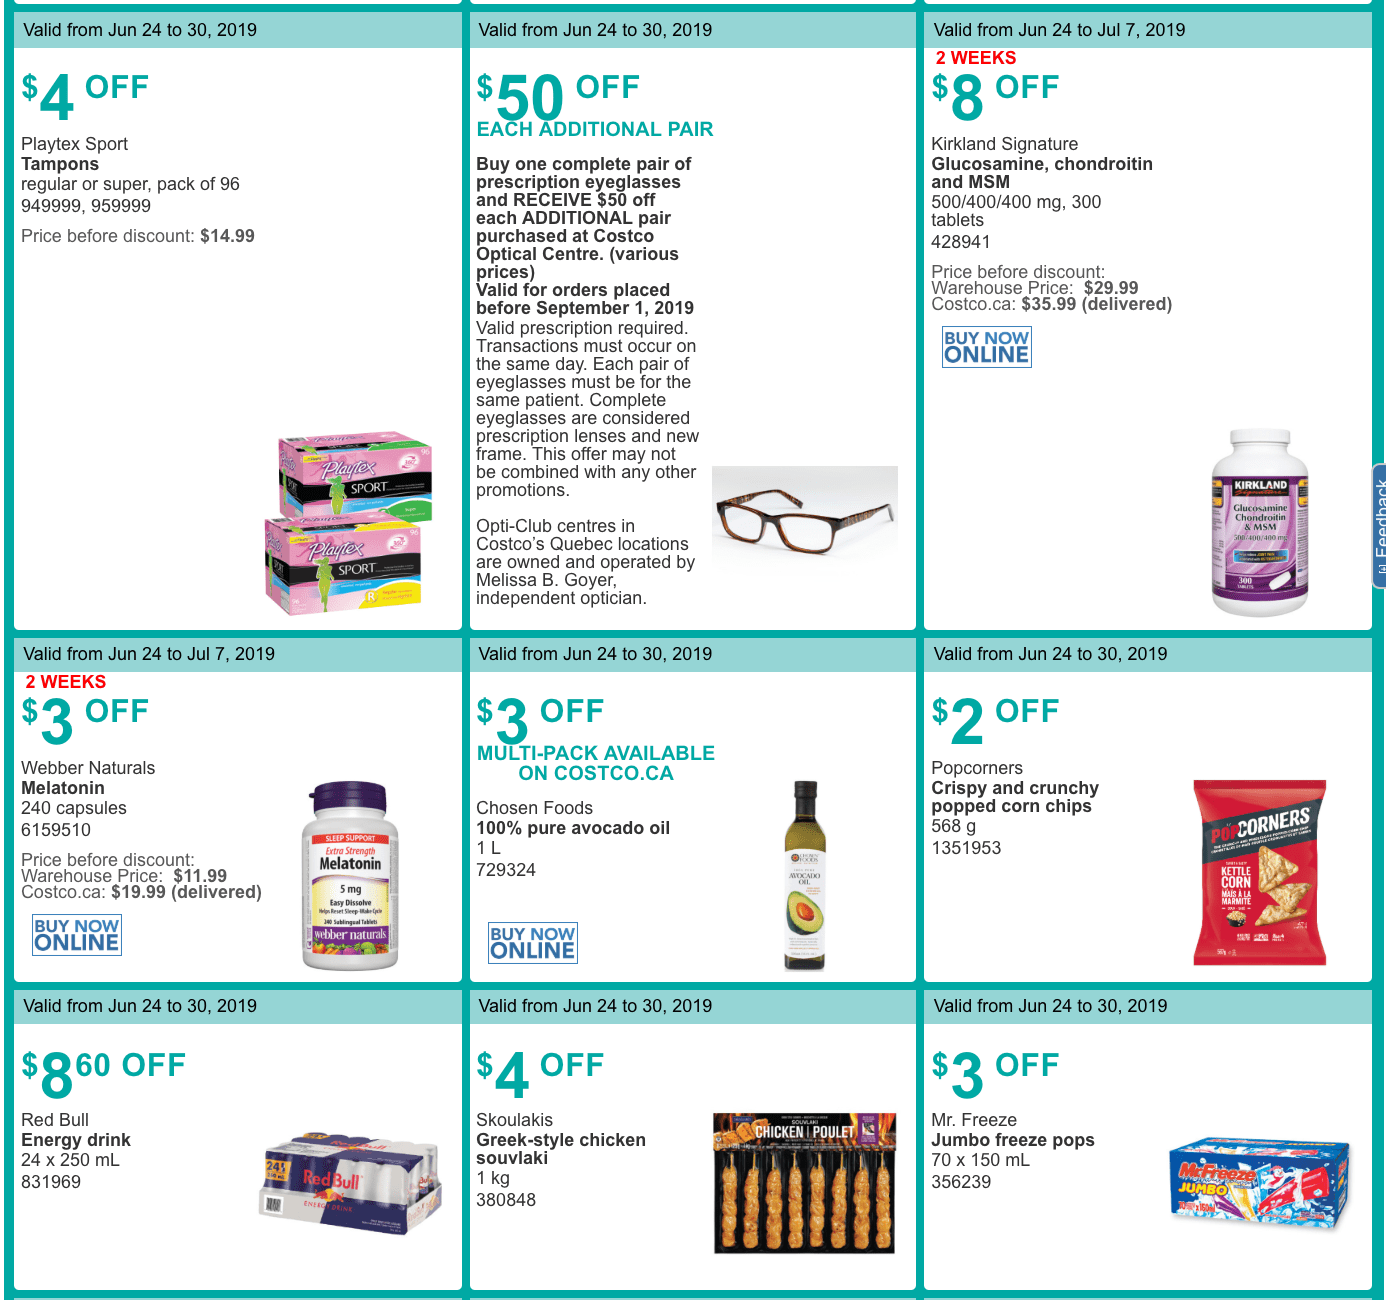 Costco Canada Summer Savings Weekly Coupons & Flyers: For